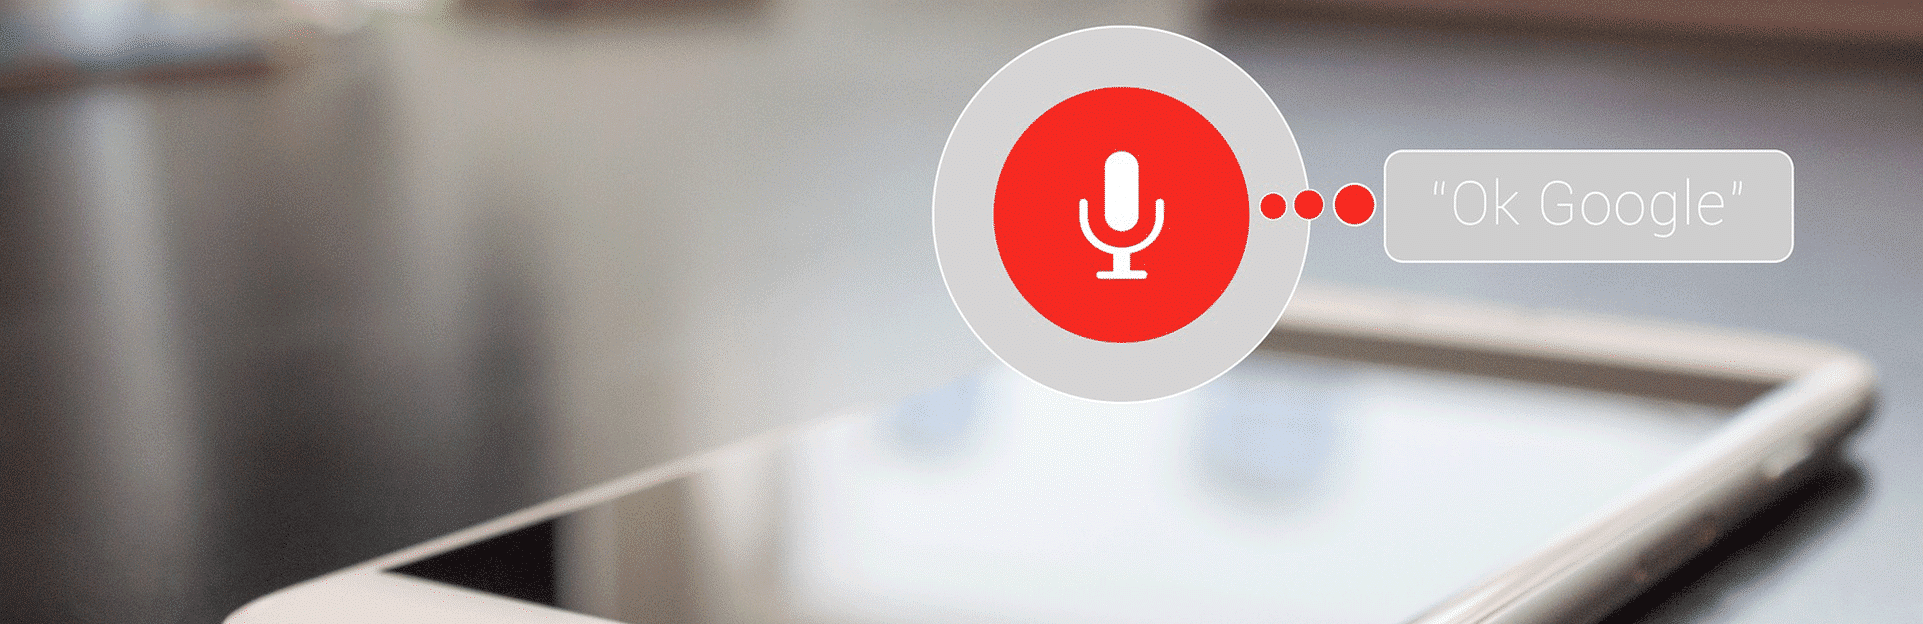 LTTR-Voice-Search